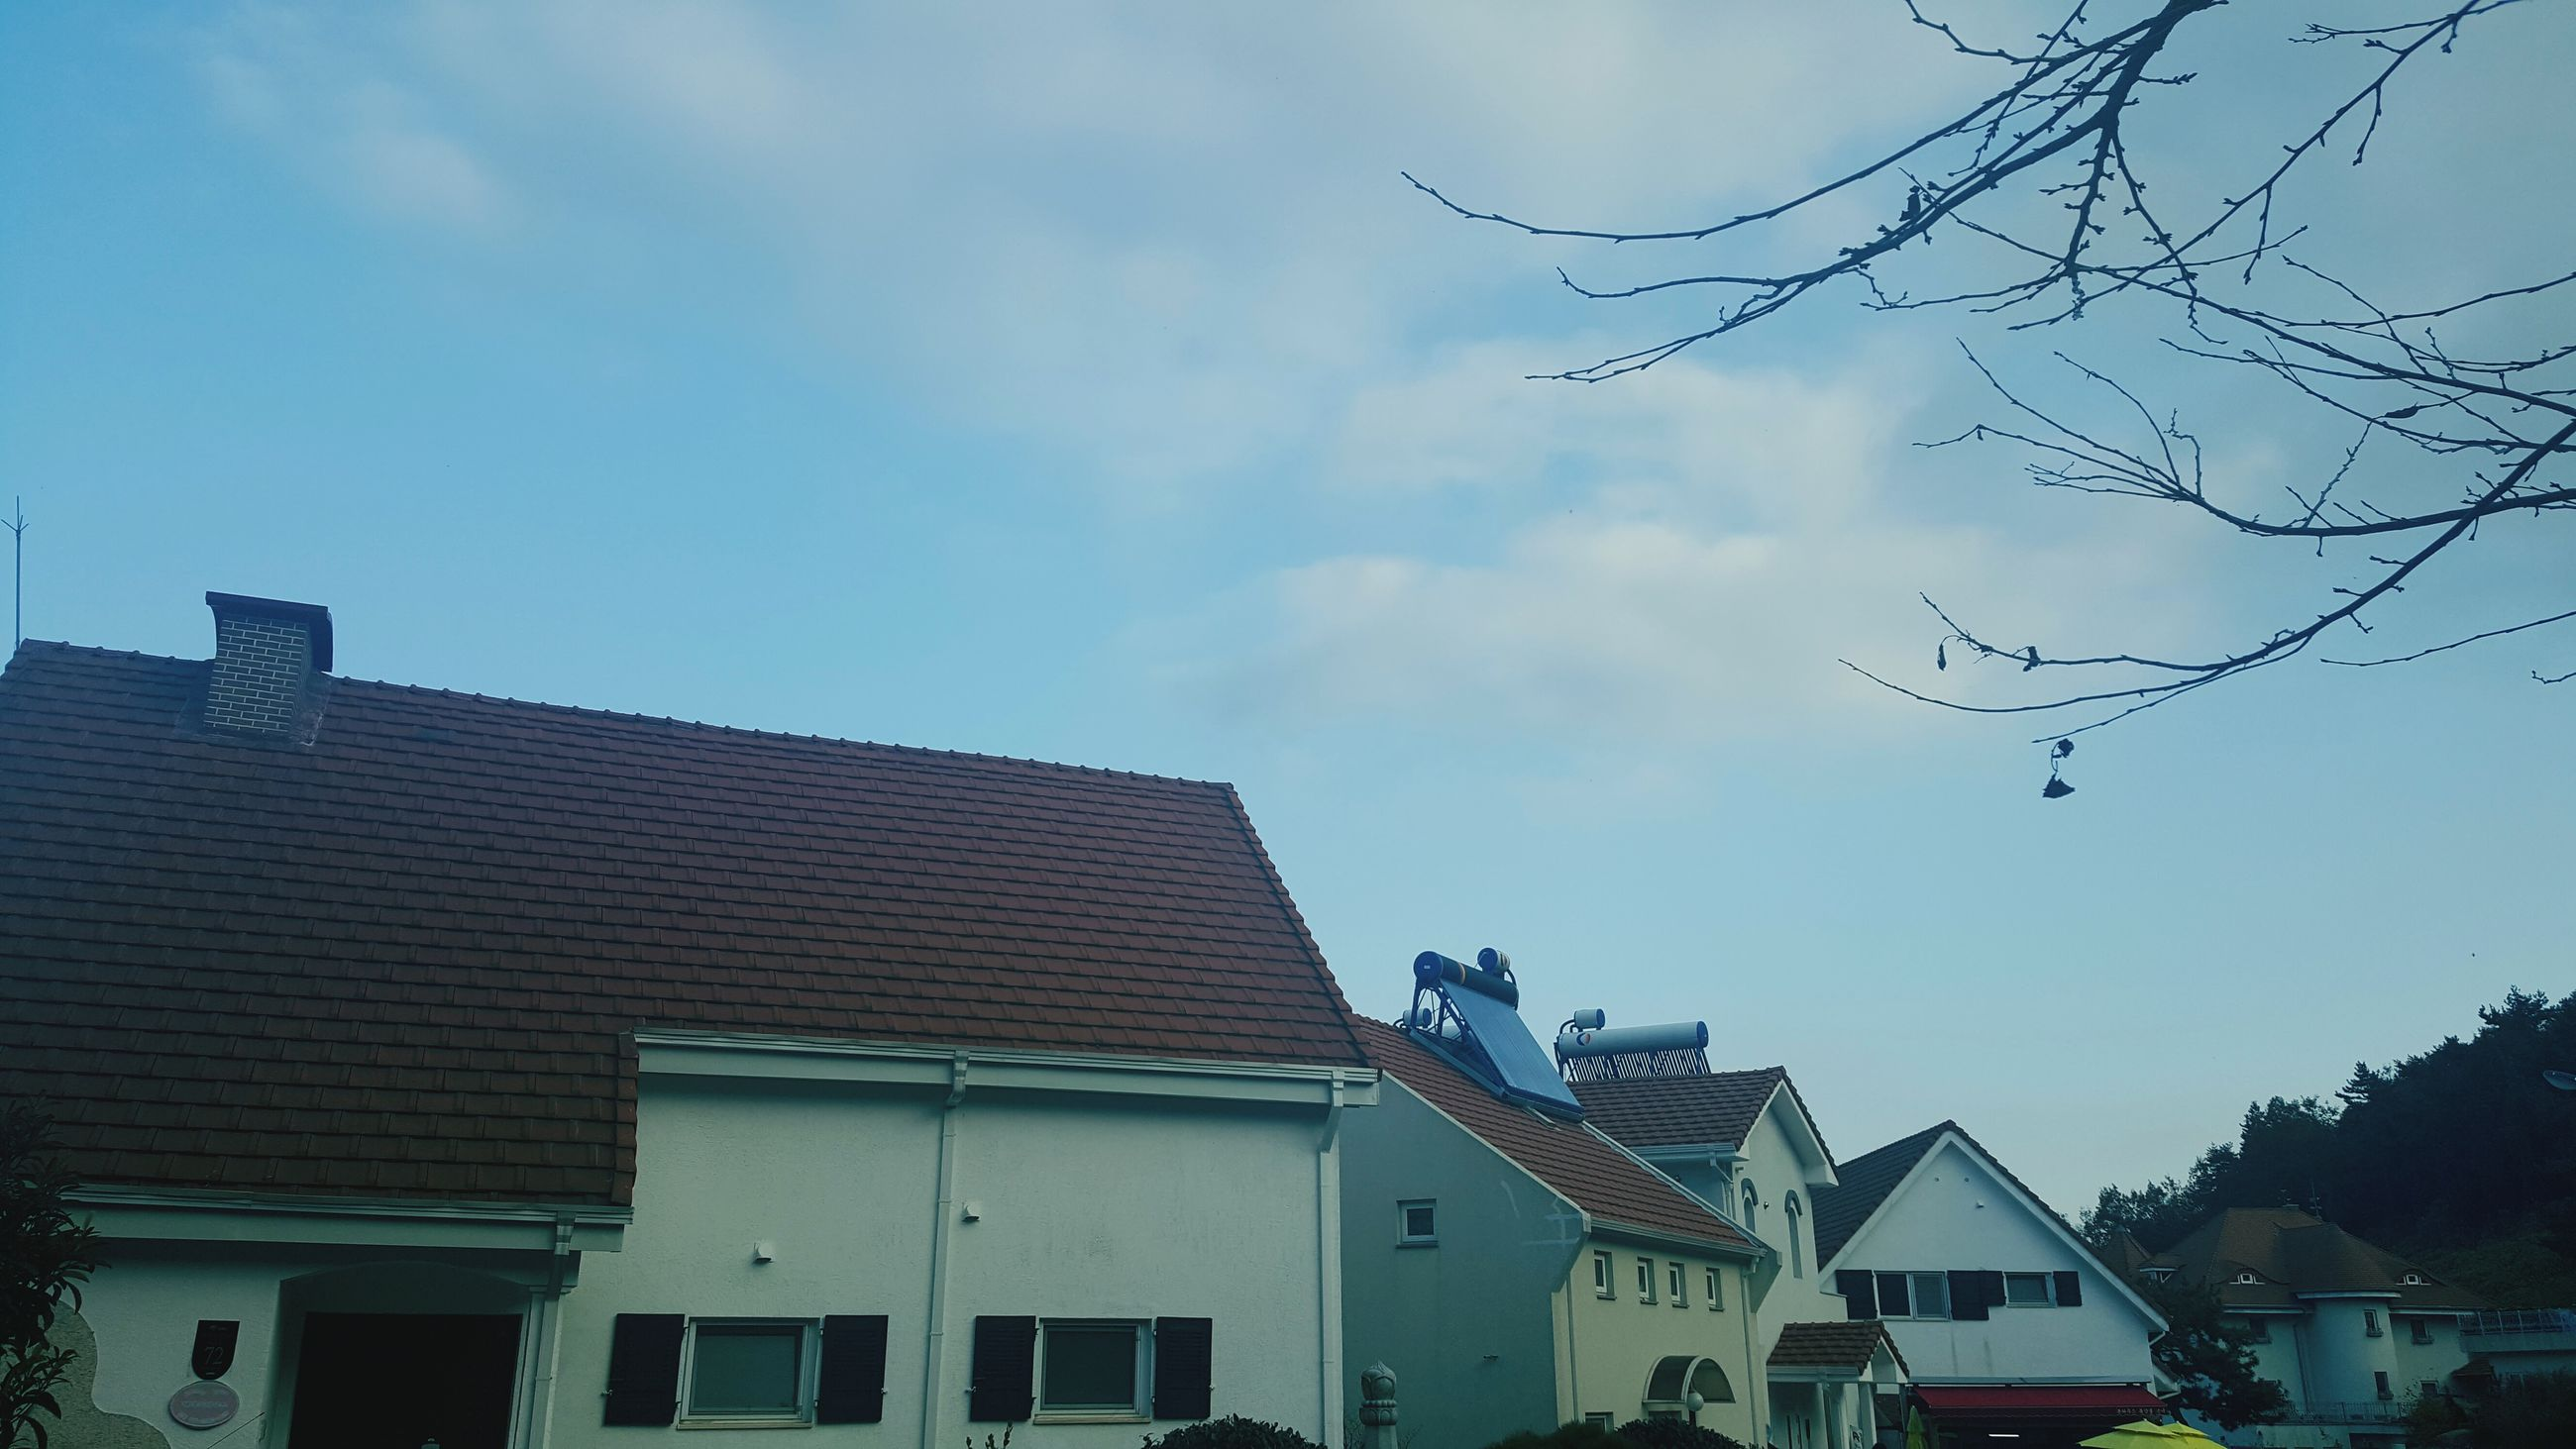 building exterior, architecture, built structure, window, sky, city, low angle view, day, no people, outdoors, cloud - sky